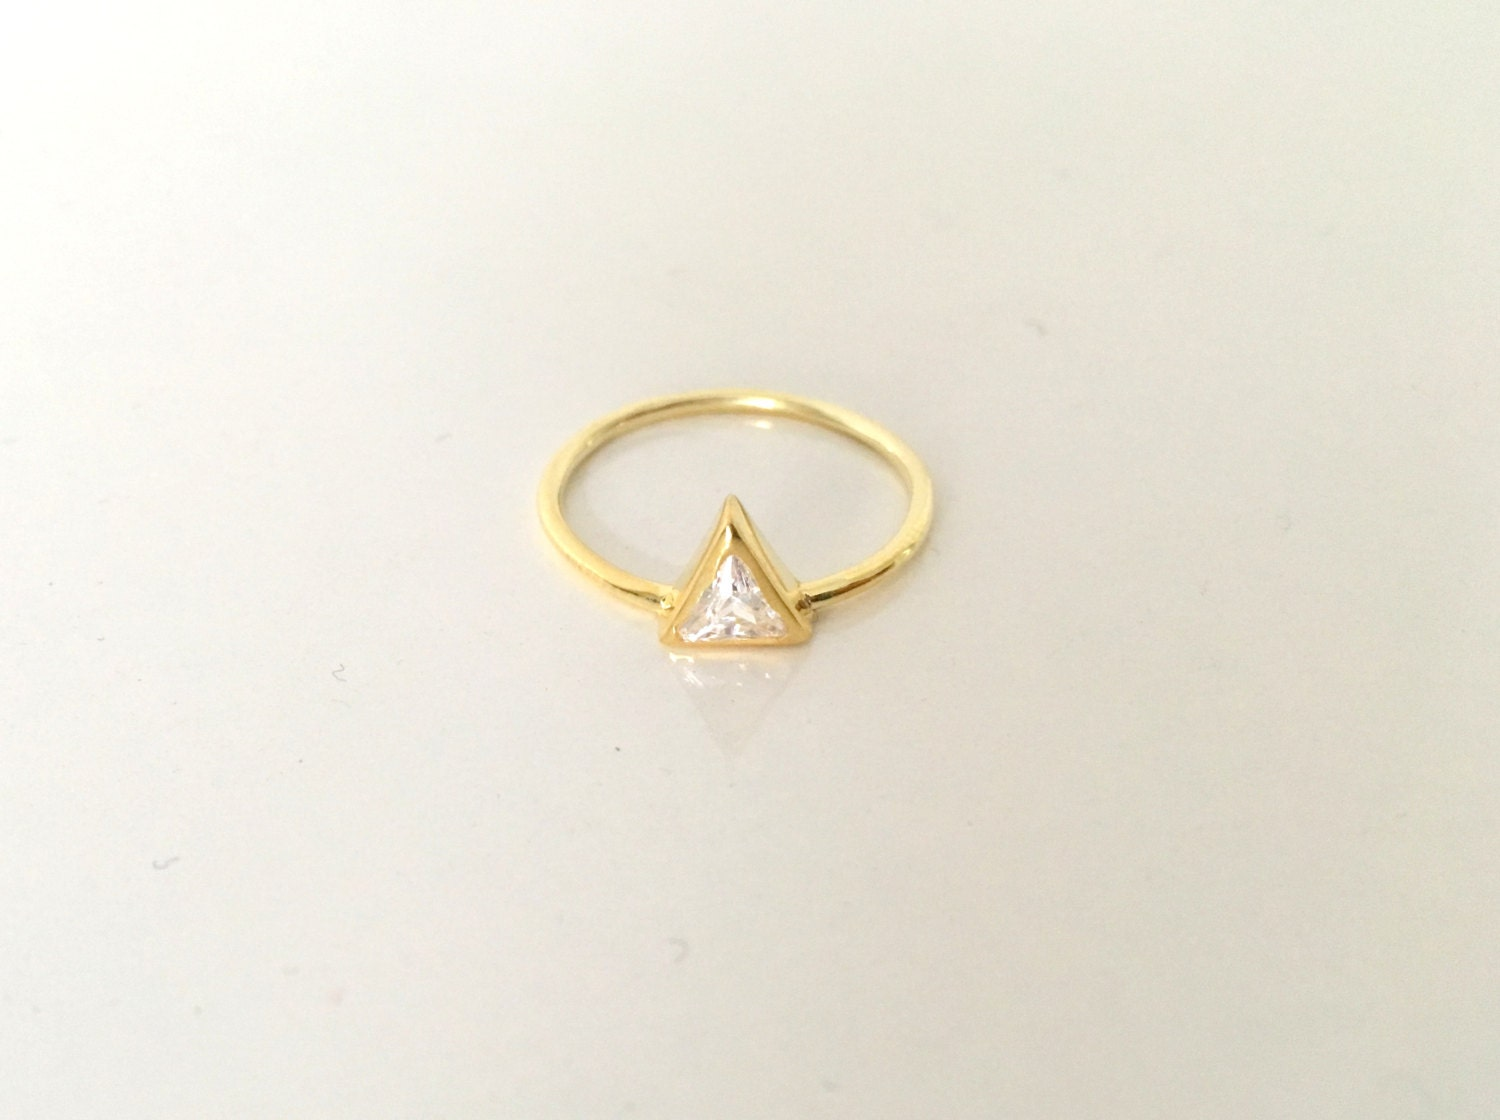 9 carat gold dress rings 4 mothers